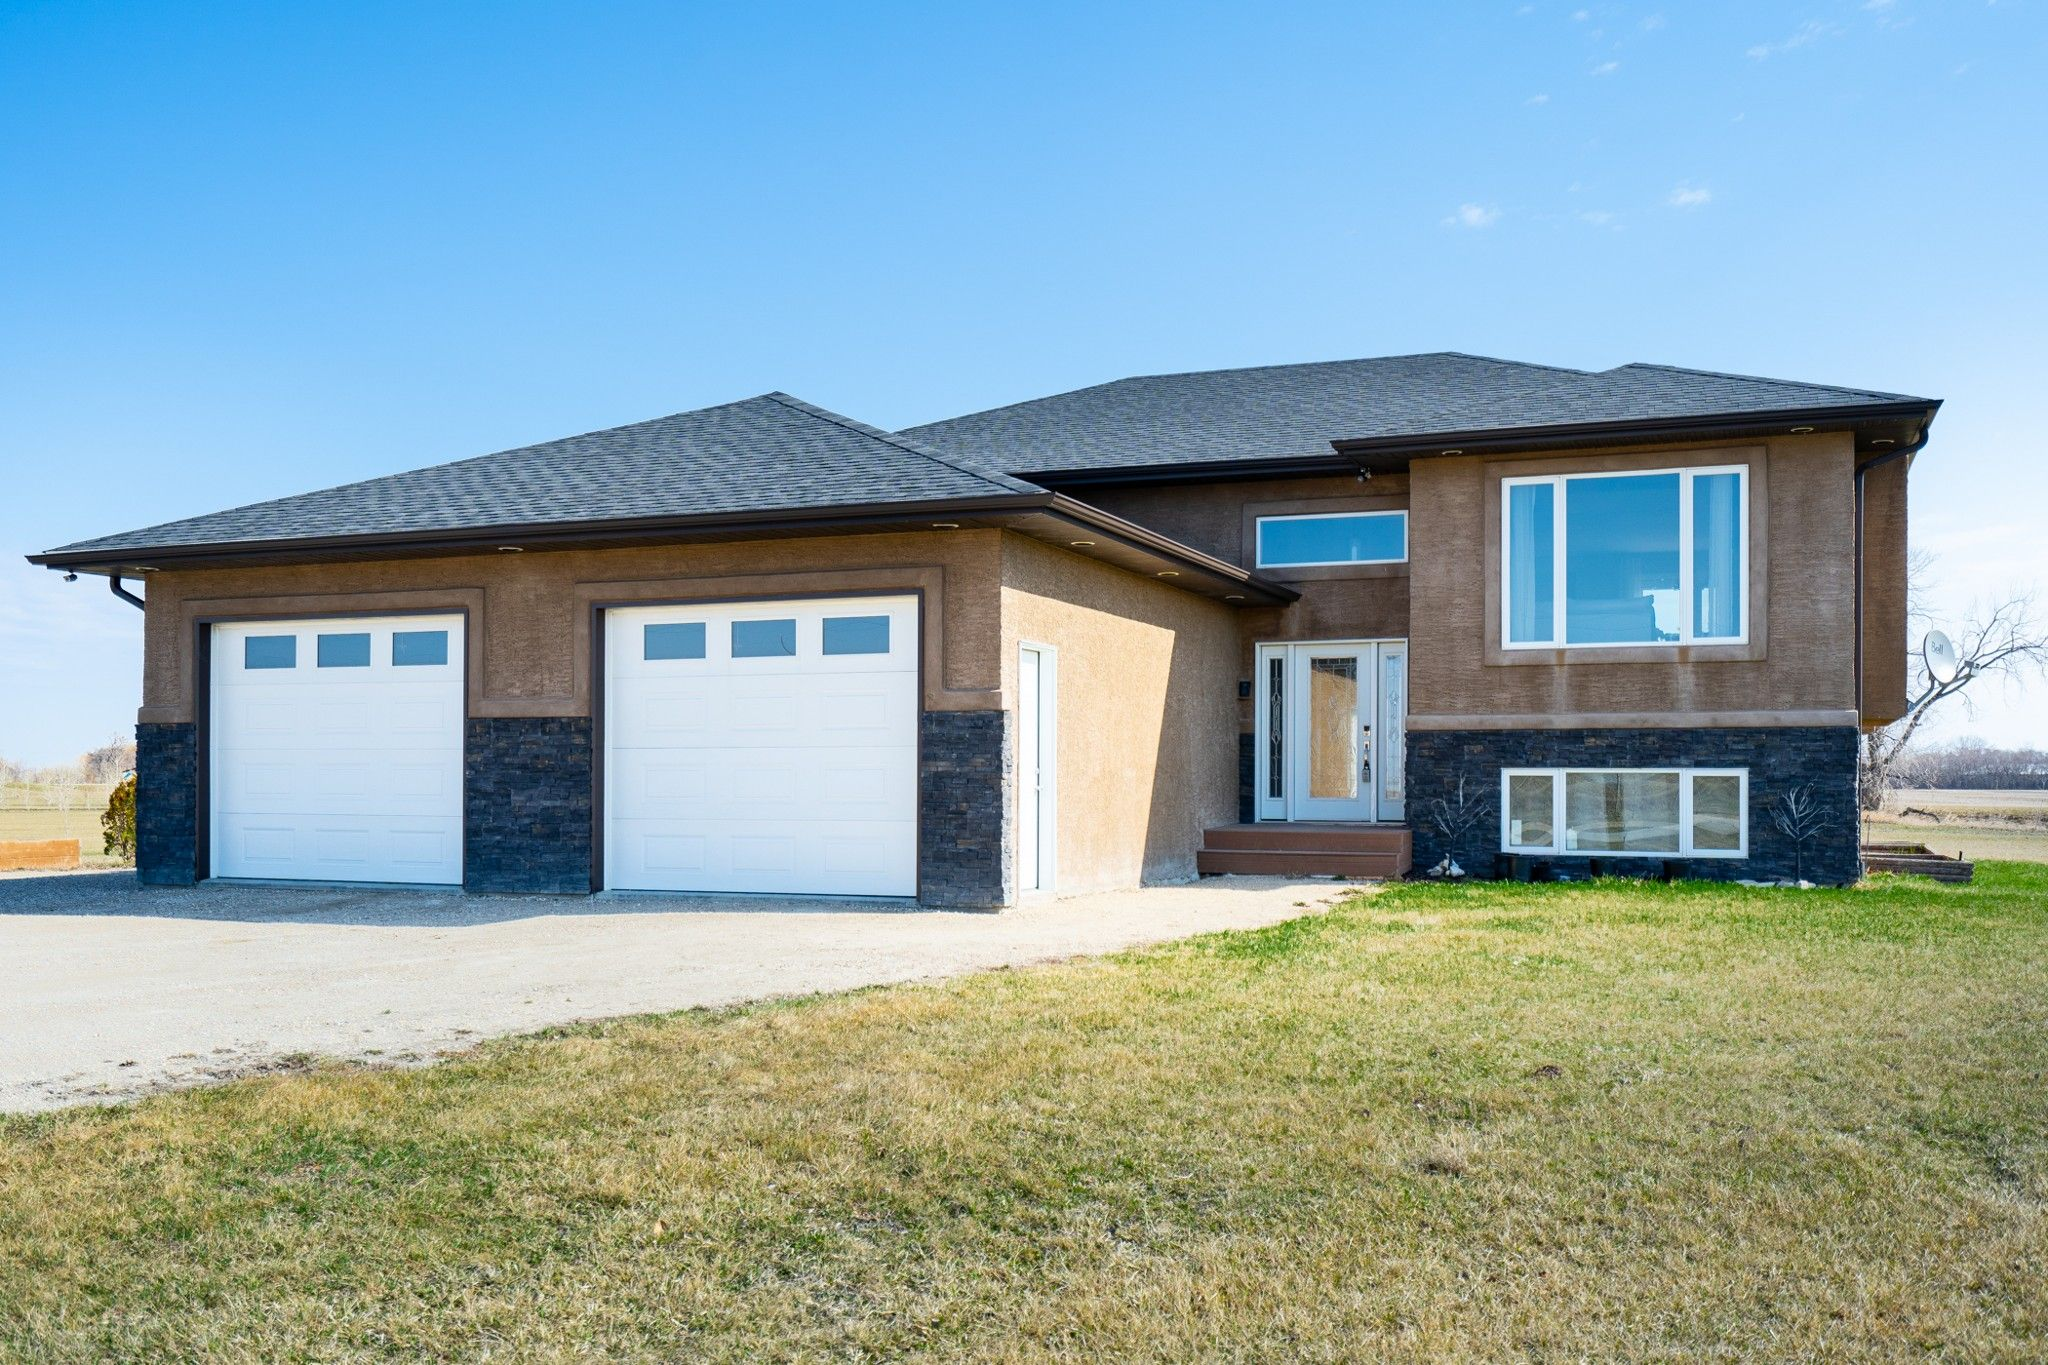 Main Photo: 44110 East Mun 26 Road in Linden: House for sale (R05)  : MLS®# 1909788